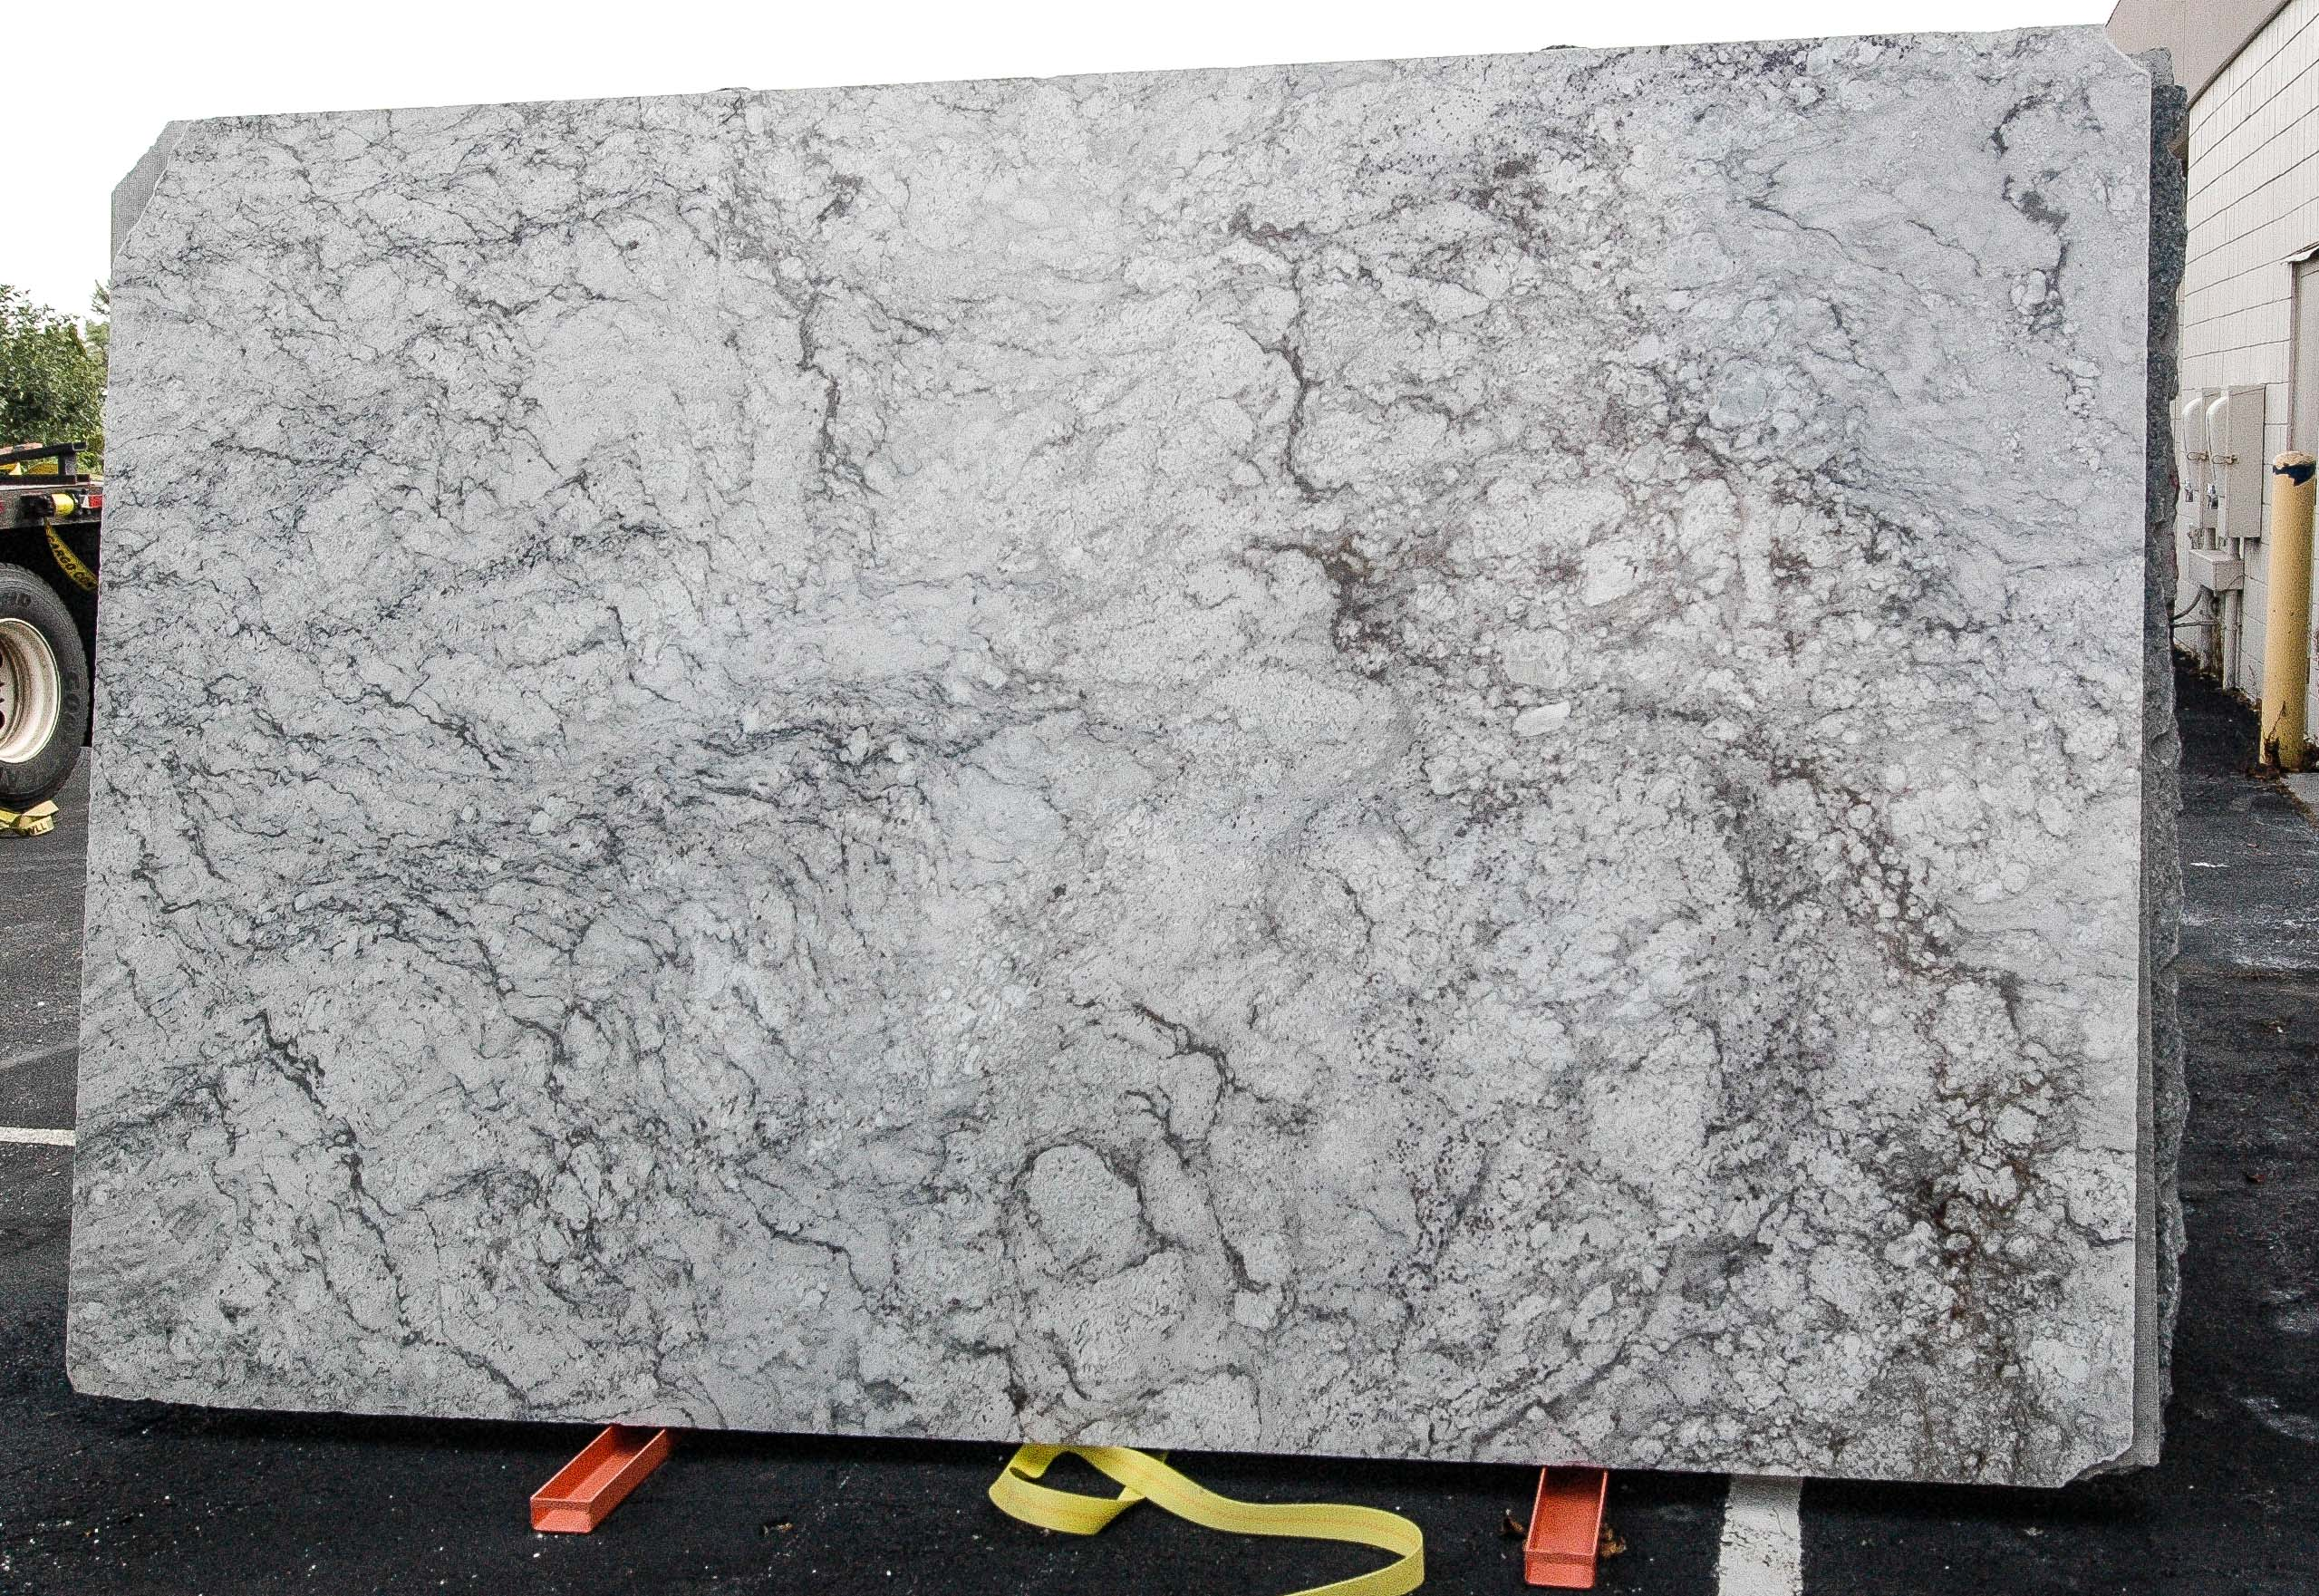 White Granite Delivered Today To Opb!  Ohio Property Brothers. Floating Shelves Ideas. Outdoor Kitchen With Green Egg. Galvanized Tub Sink. Modern Bedding Sets. Vanity Ikea. How To Make Your Own Wallpaper. German Shrunk. Chakra Beige Quartz